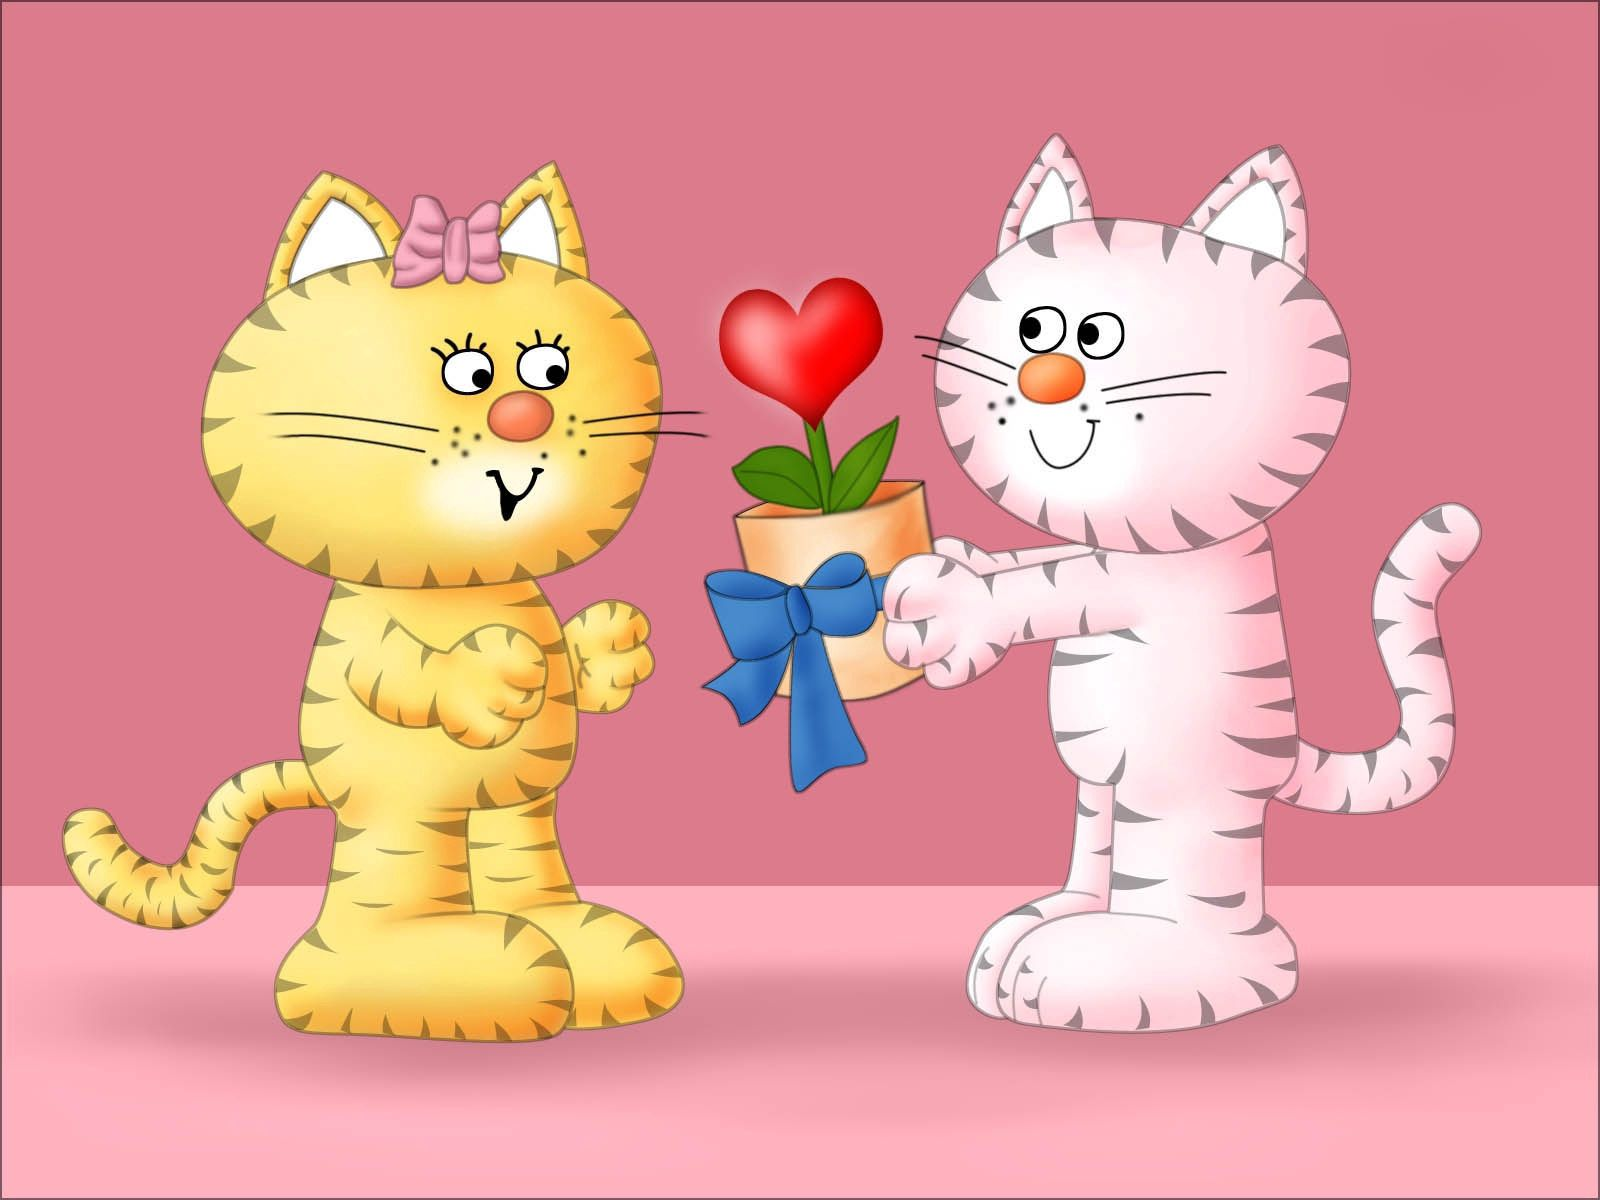 97877 download wallpaper Love, Lovers, Present, Gift, Cats screensavers and pictures for free